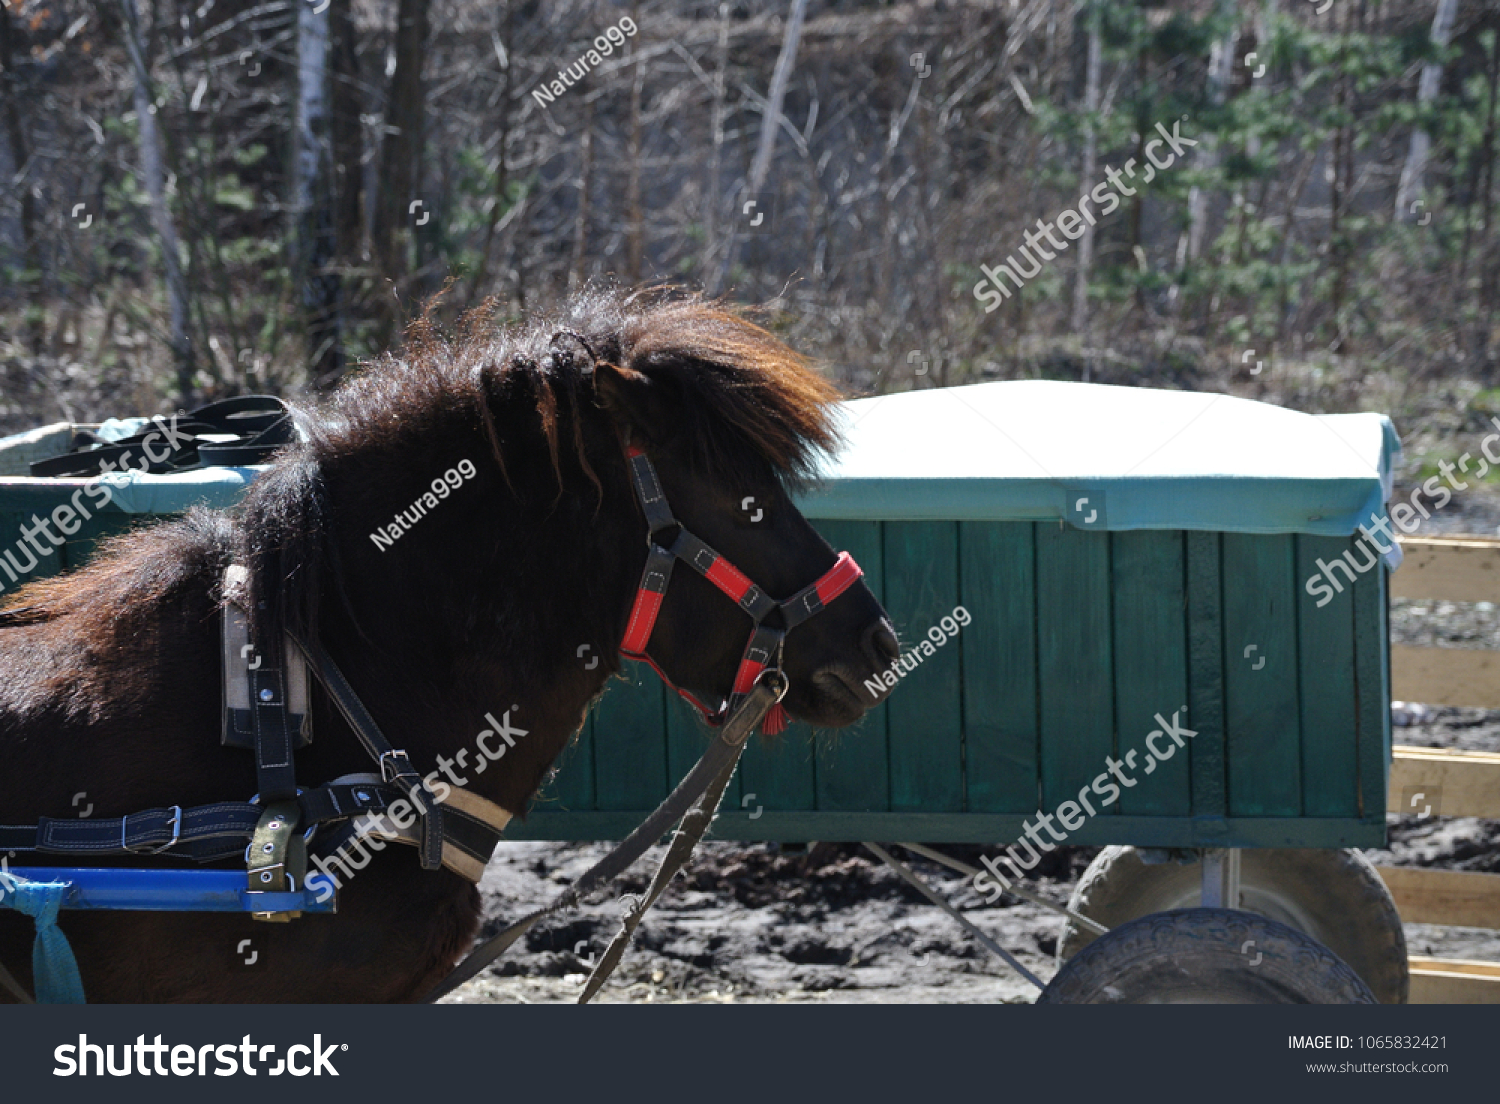 hight resolution of black pony in harness